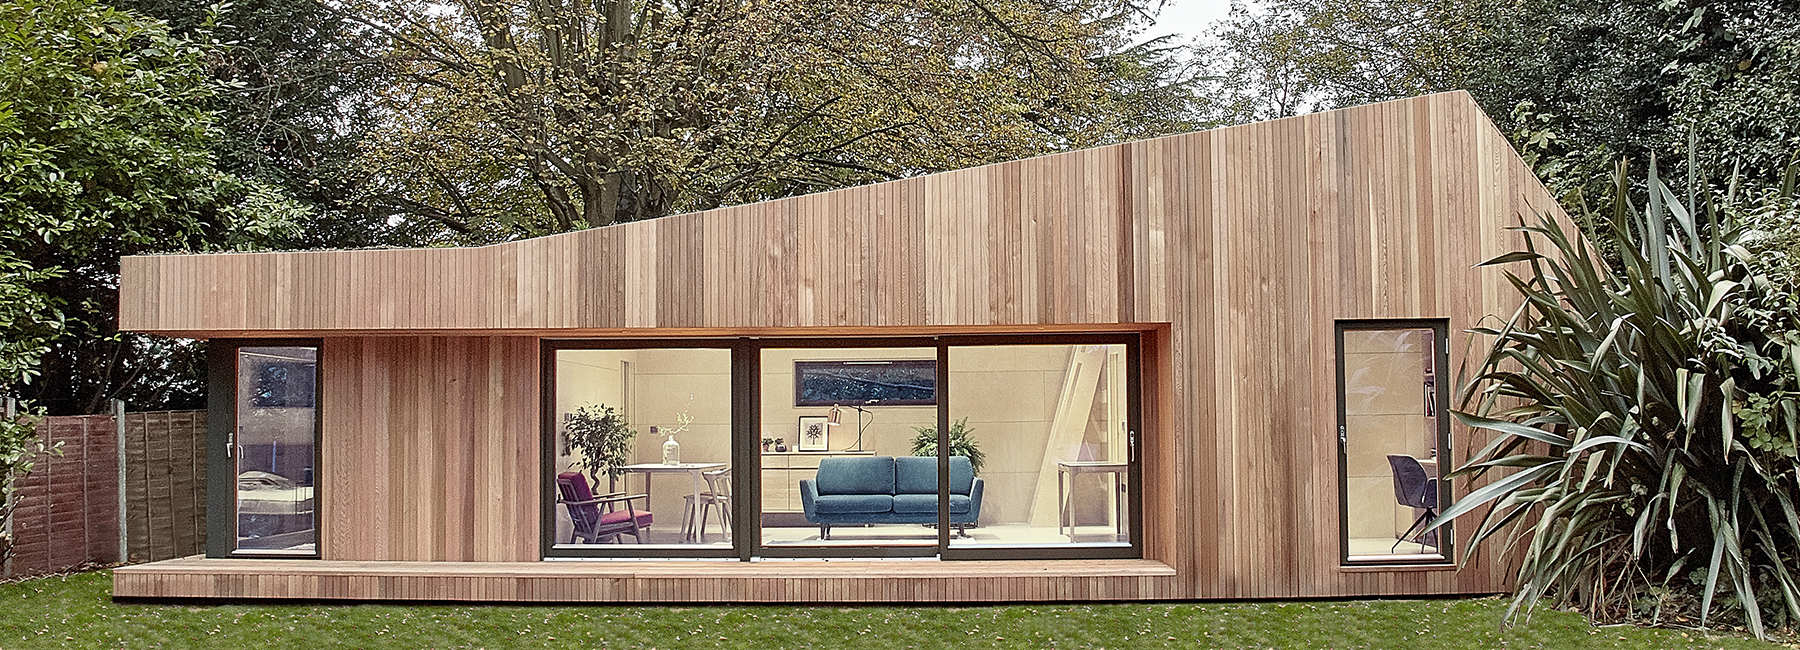 Prefab curbed for Modular built homes